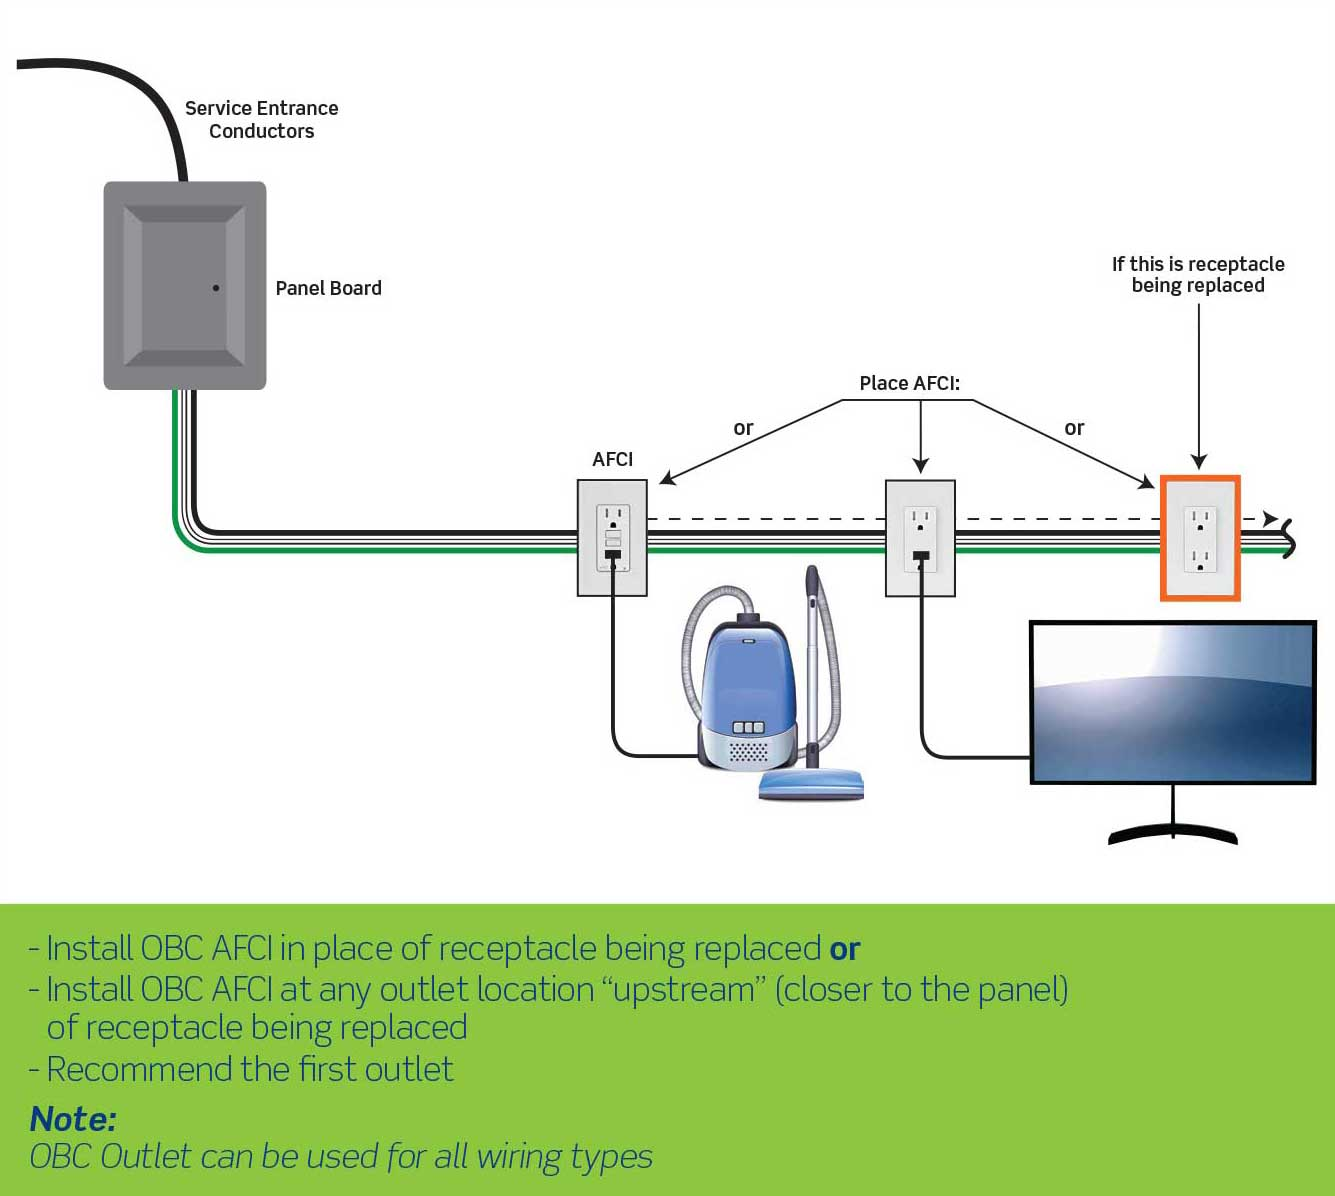 changing out an existing receptacle – nec 406 4(d)